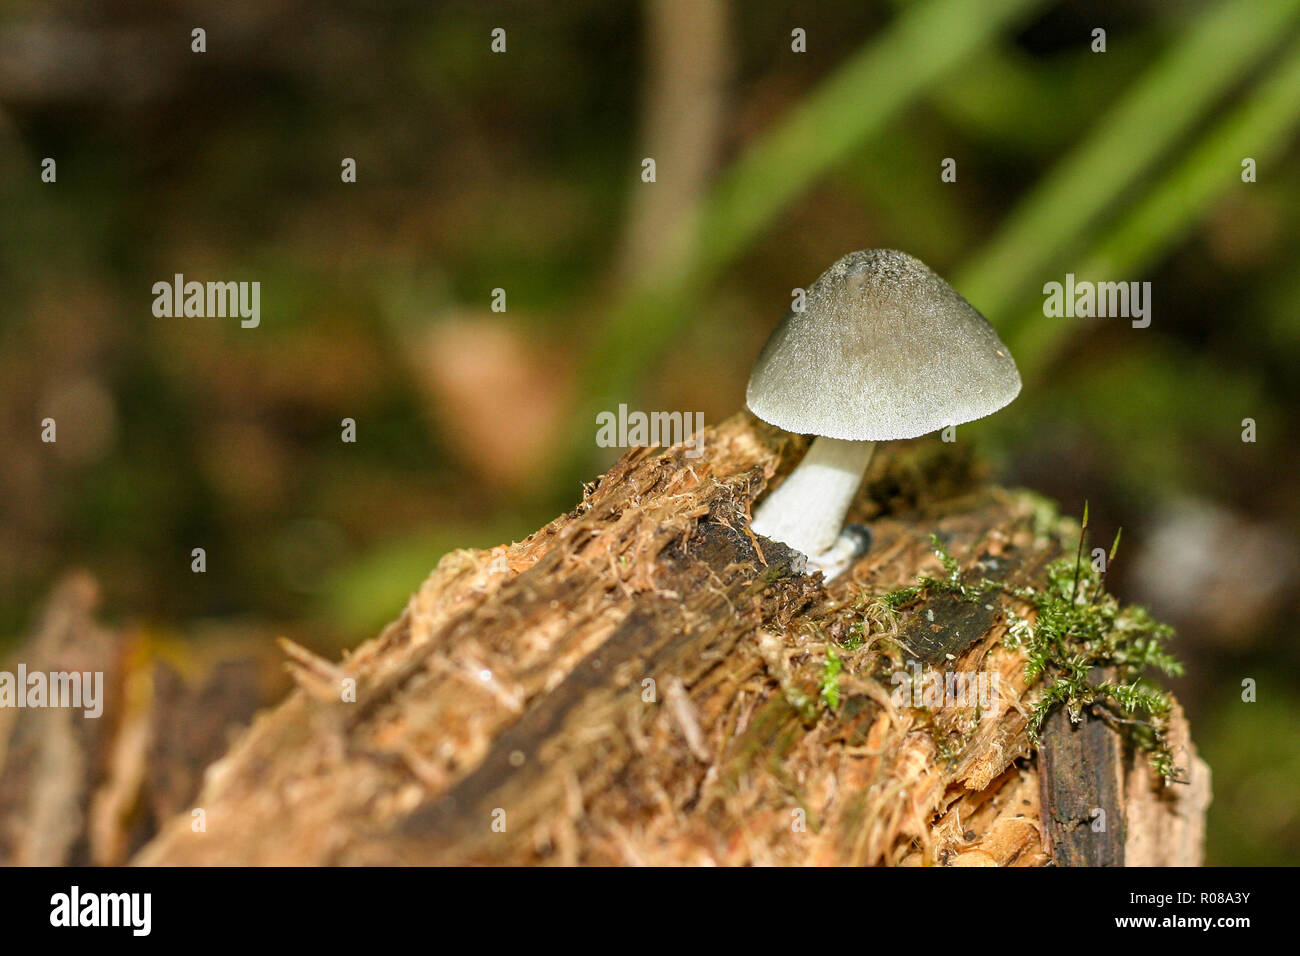 Lone mushroom with moss on the dead trunk of a tree - Stock Image